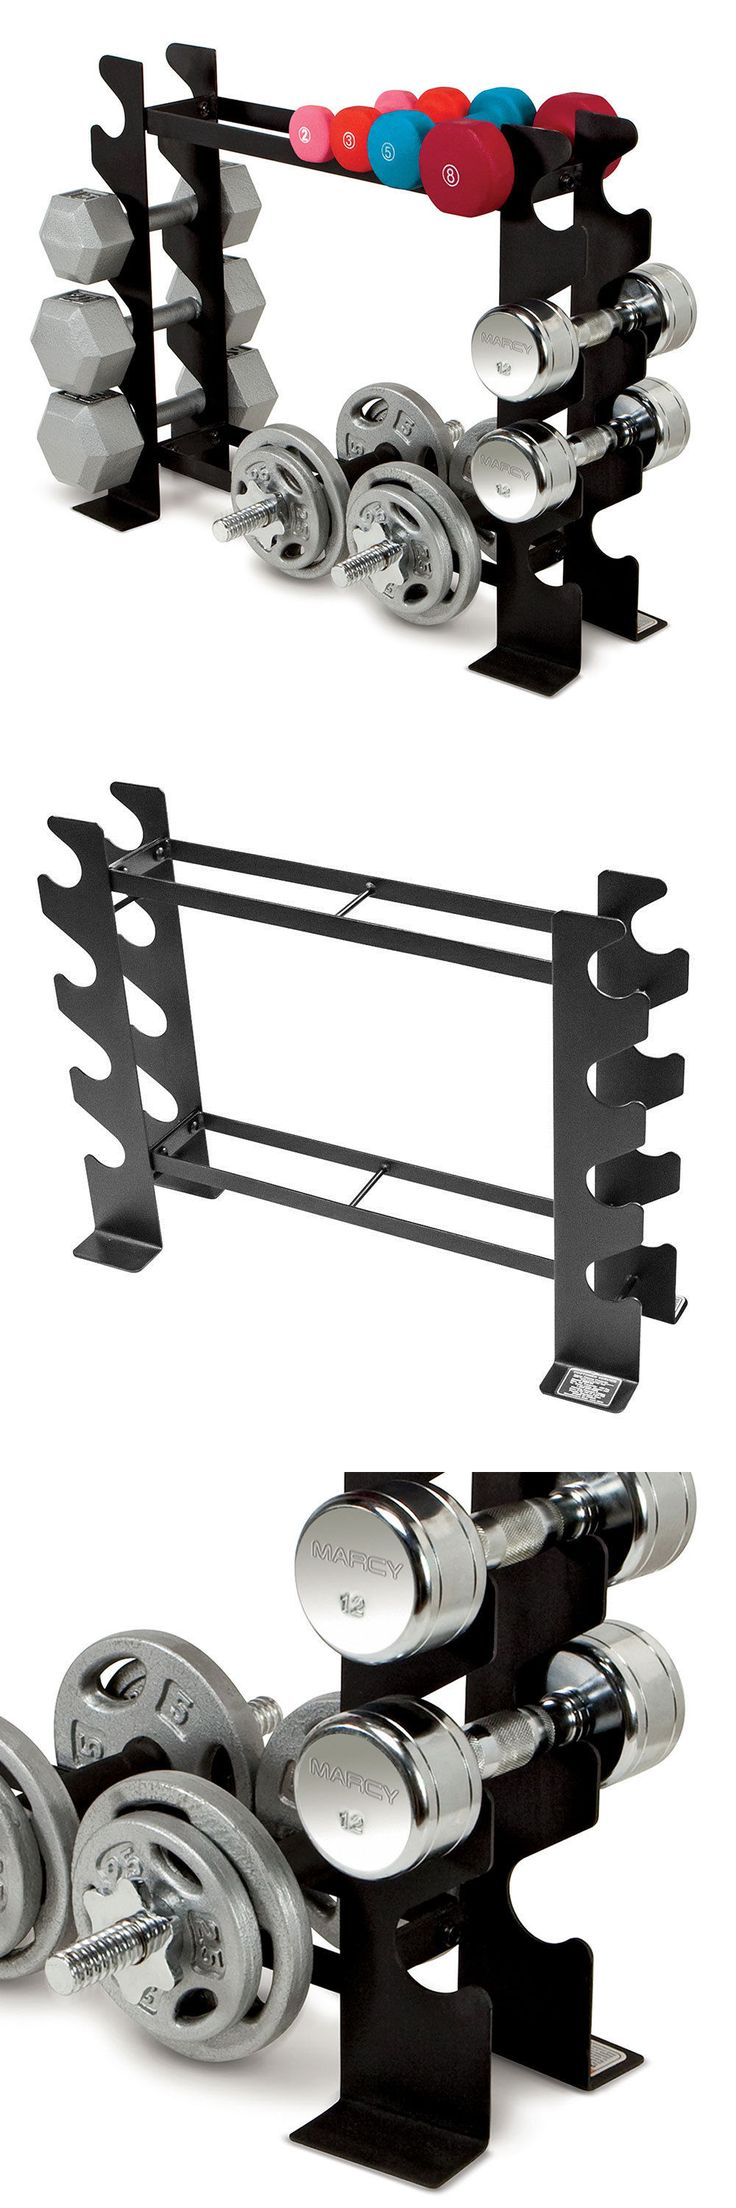 Weight Storage 179819: Compact Dumbbell Rack Marcy Dbr-56 Tier Horizontal Gym Storage Fitness Equipment -> BUY IT NOW ONLY: $45.99 on eBay!